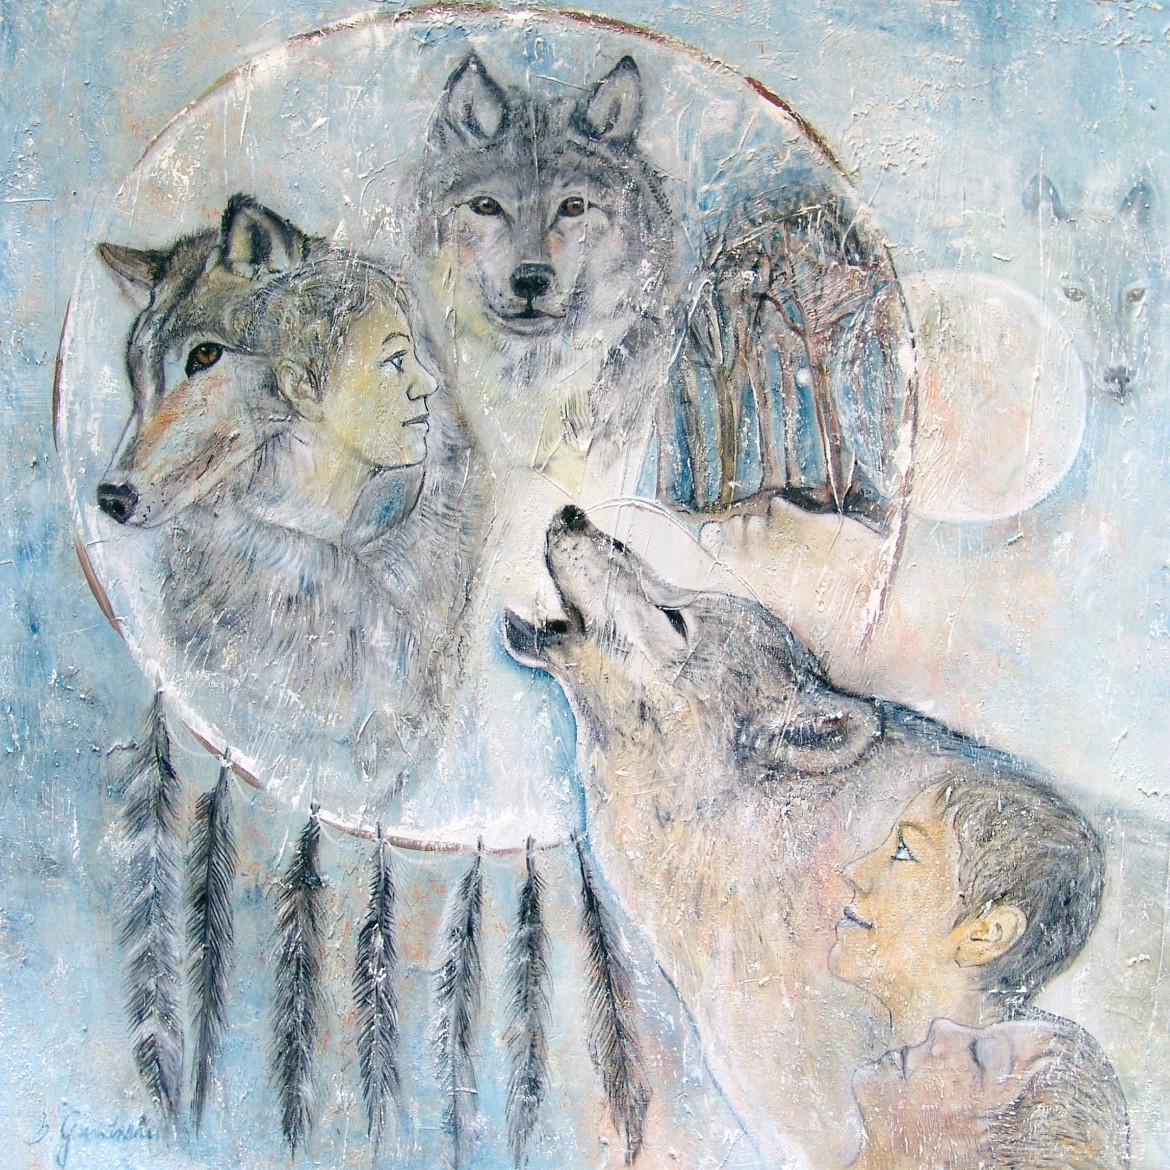 Dream Catcher, Brigitte Gautschi